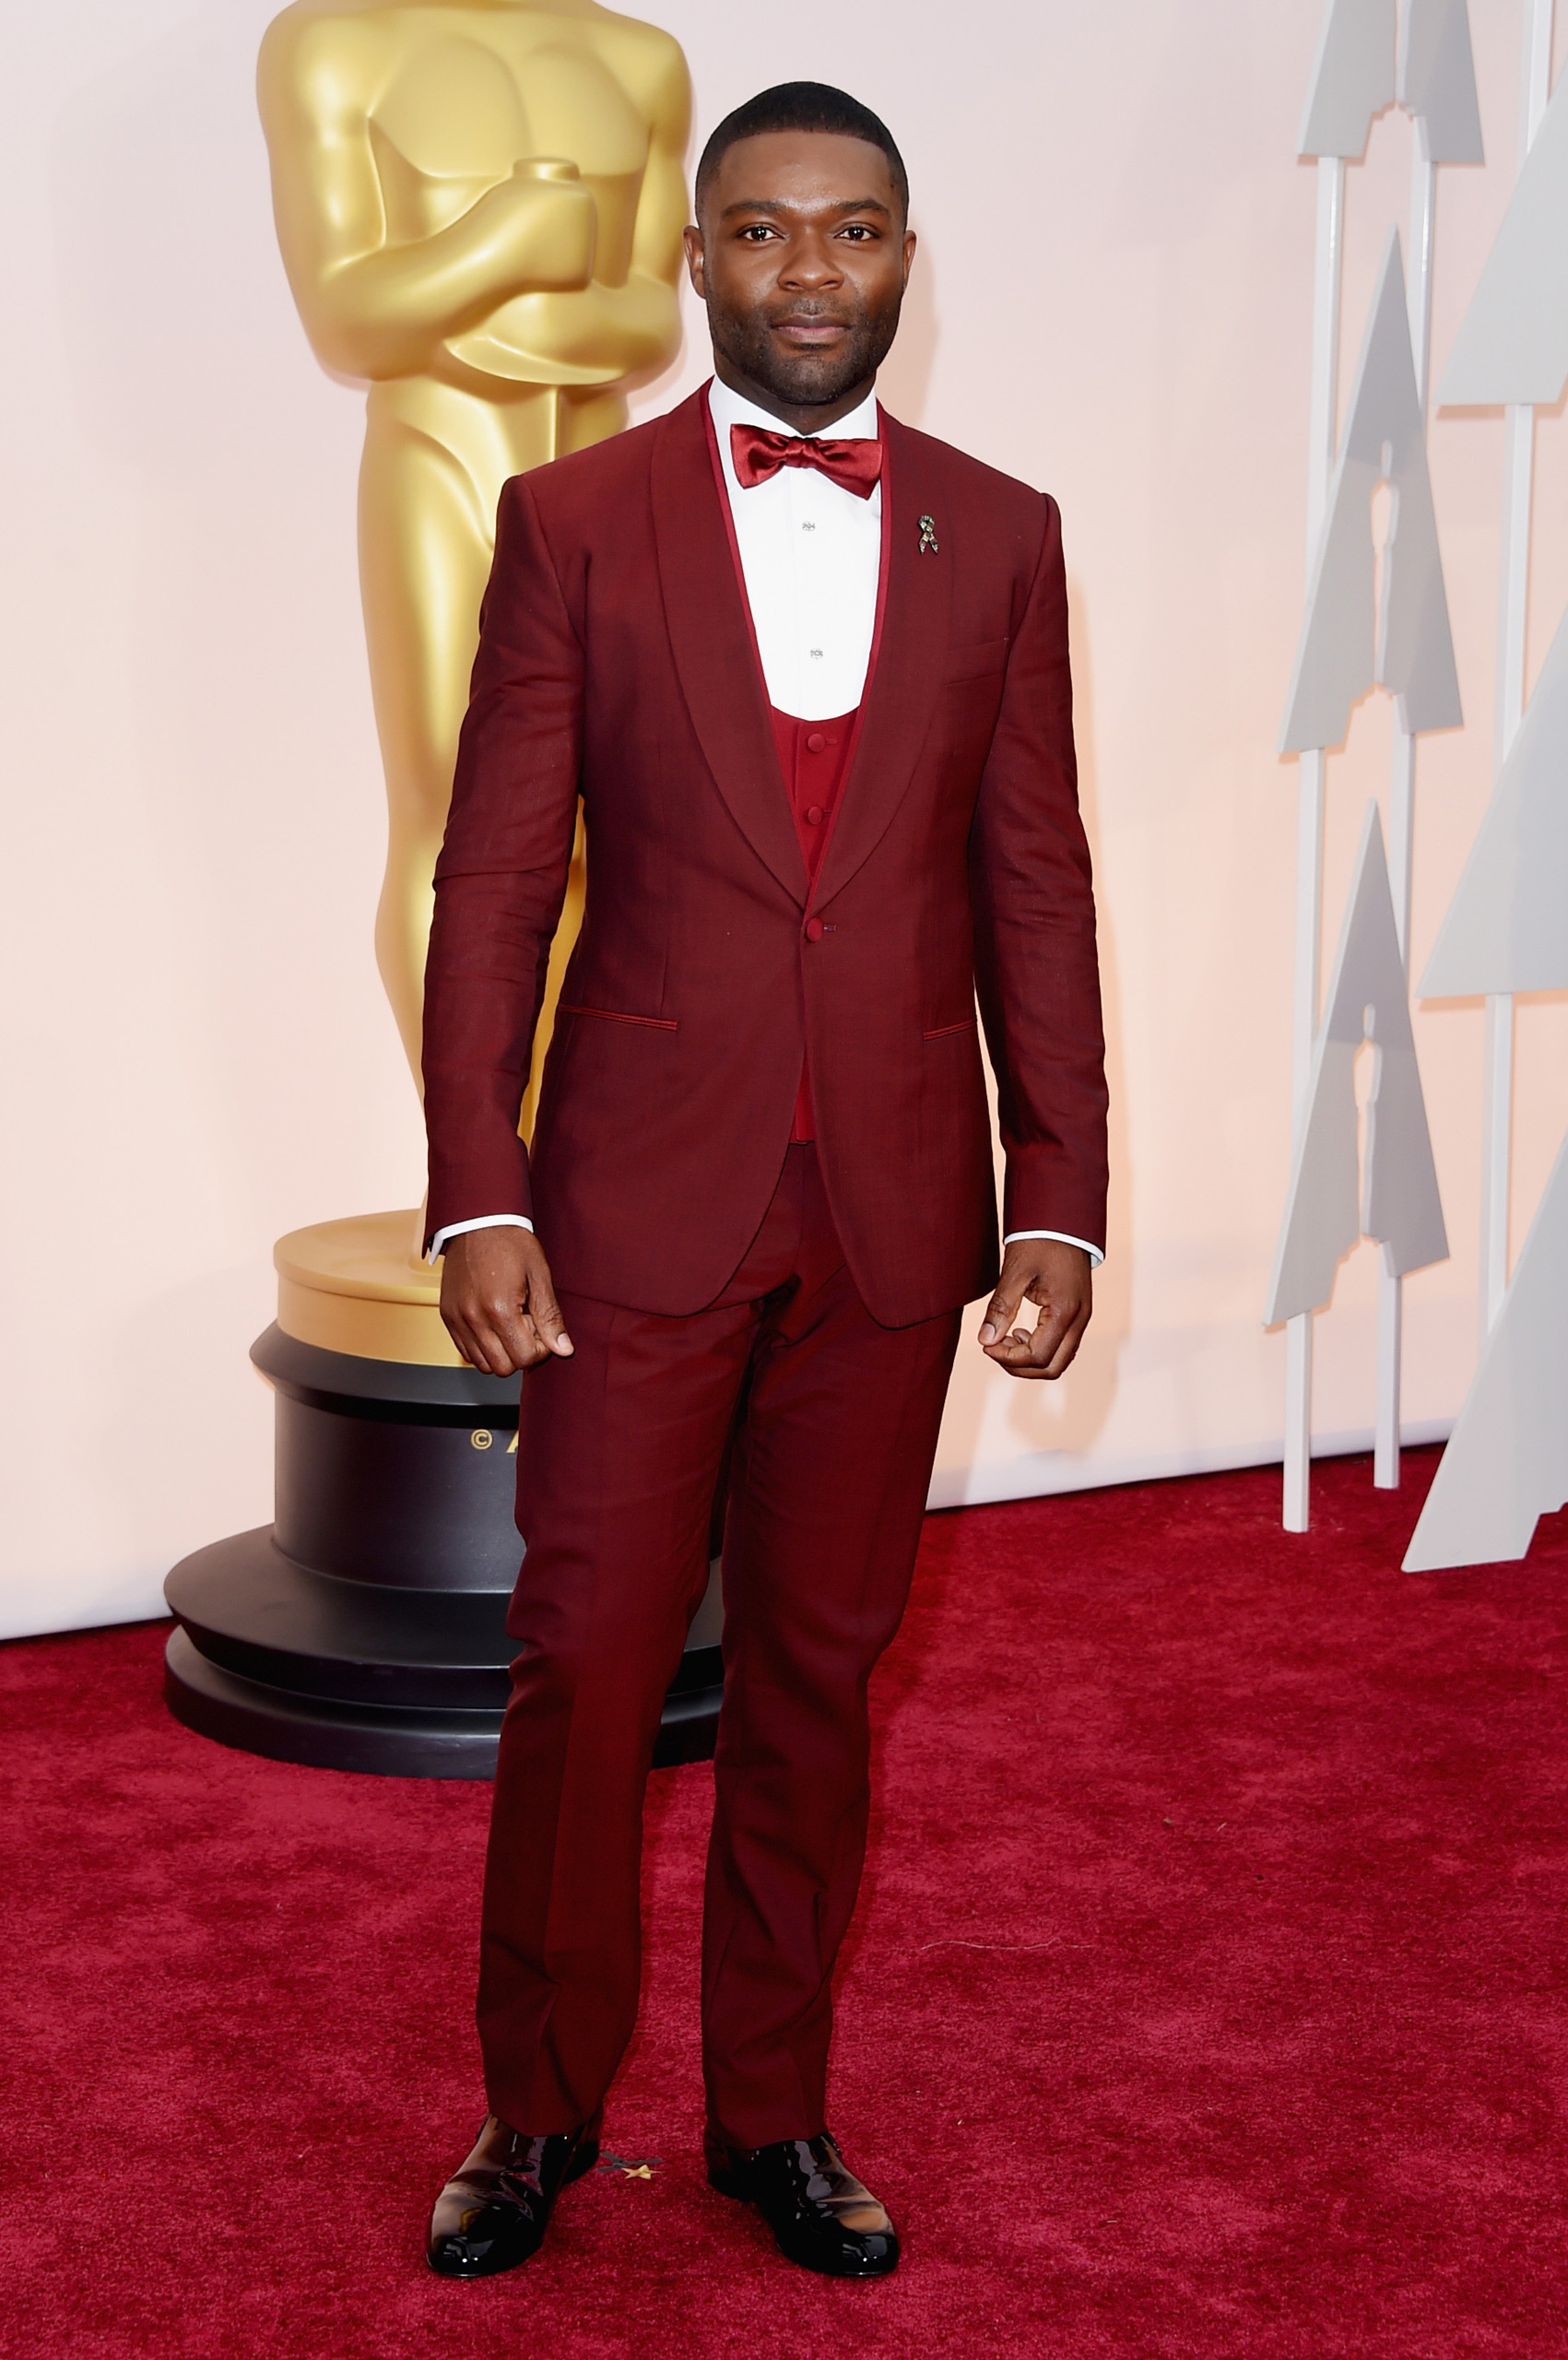 David Oyelowo attends the 87th Annual Academy Awards on Feb. 22, 2015 in Hollywood, Calif.